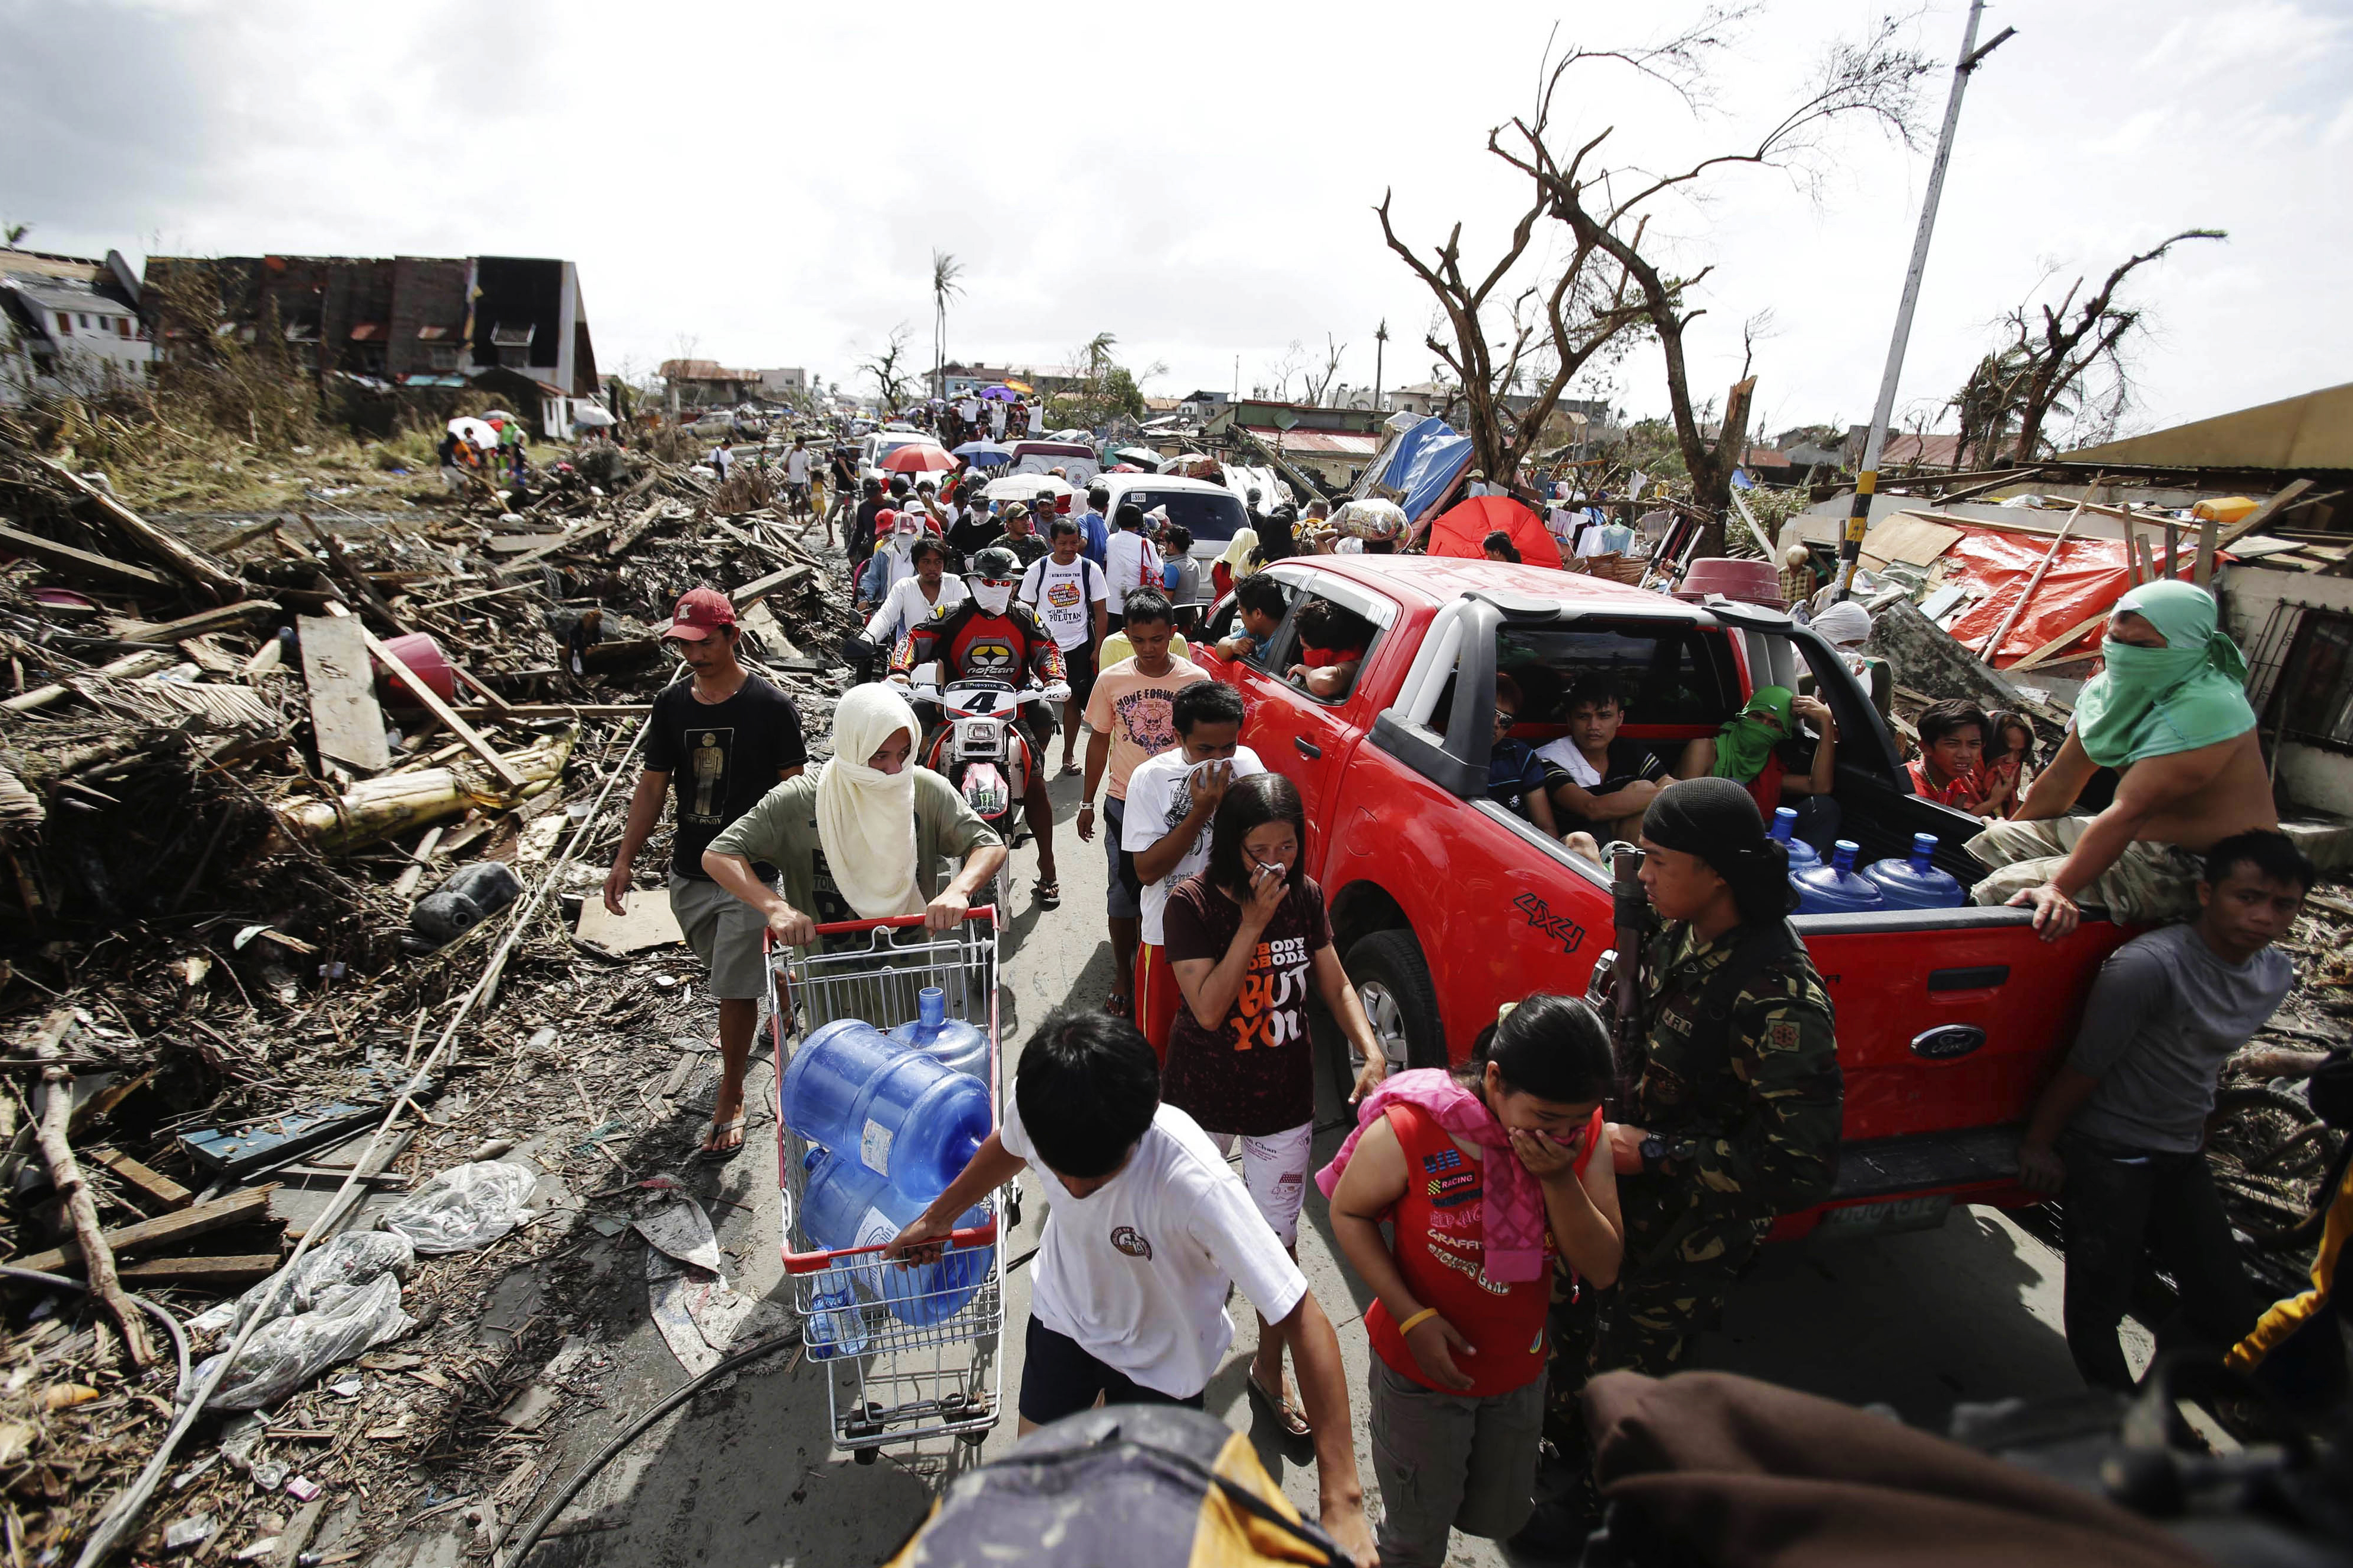 Typhoon survivors fill the streets as they race for supplies in Tacloban. The city was flattened by the huge storm, authorities say.